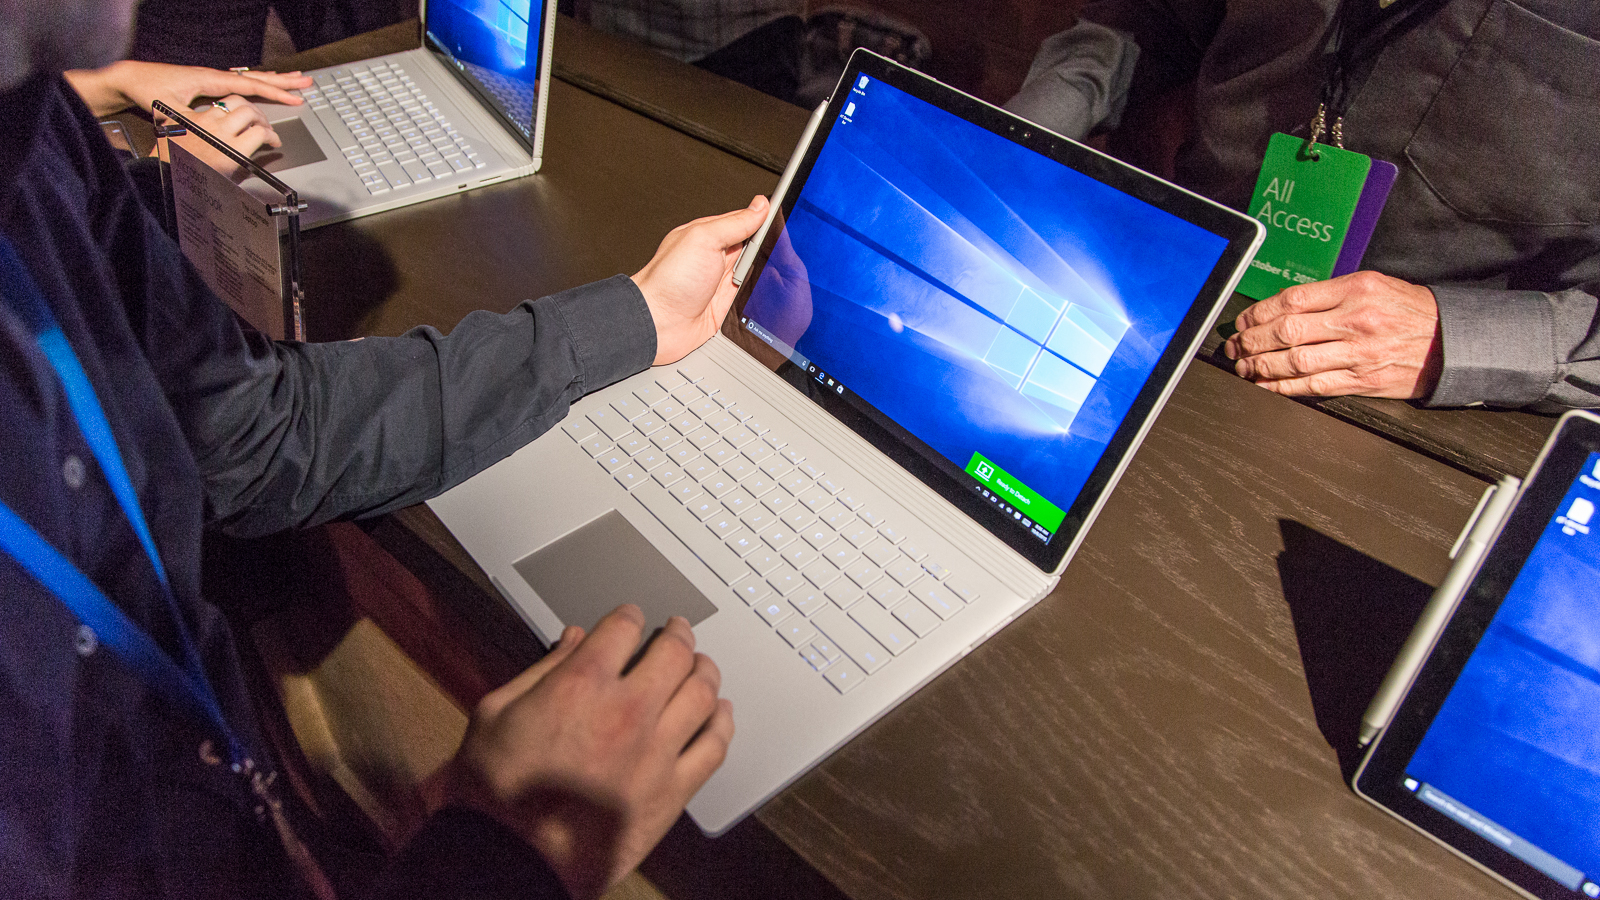 [Hands-on] Microsoft Surface Book: rumo ao laptop perfeito